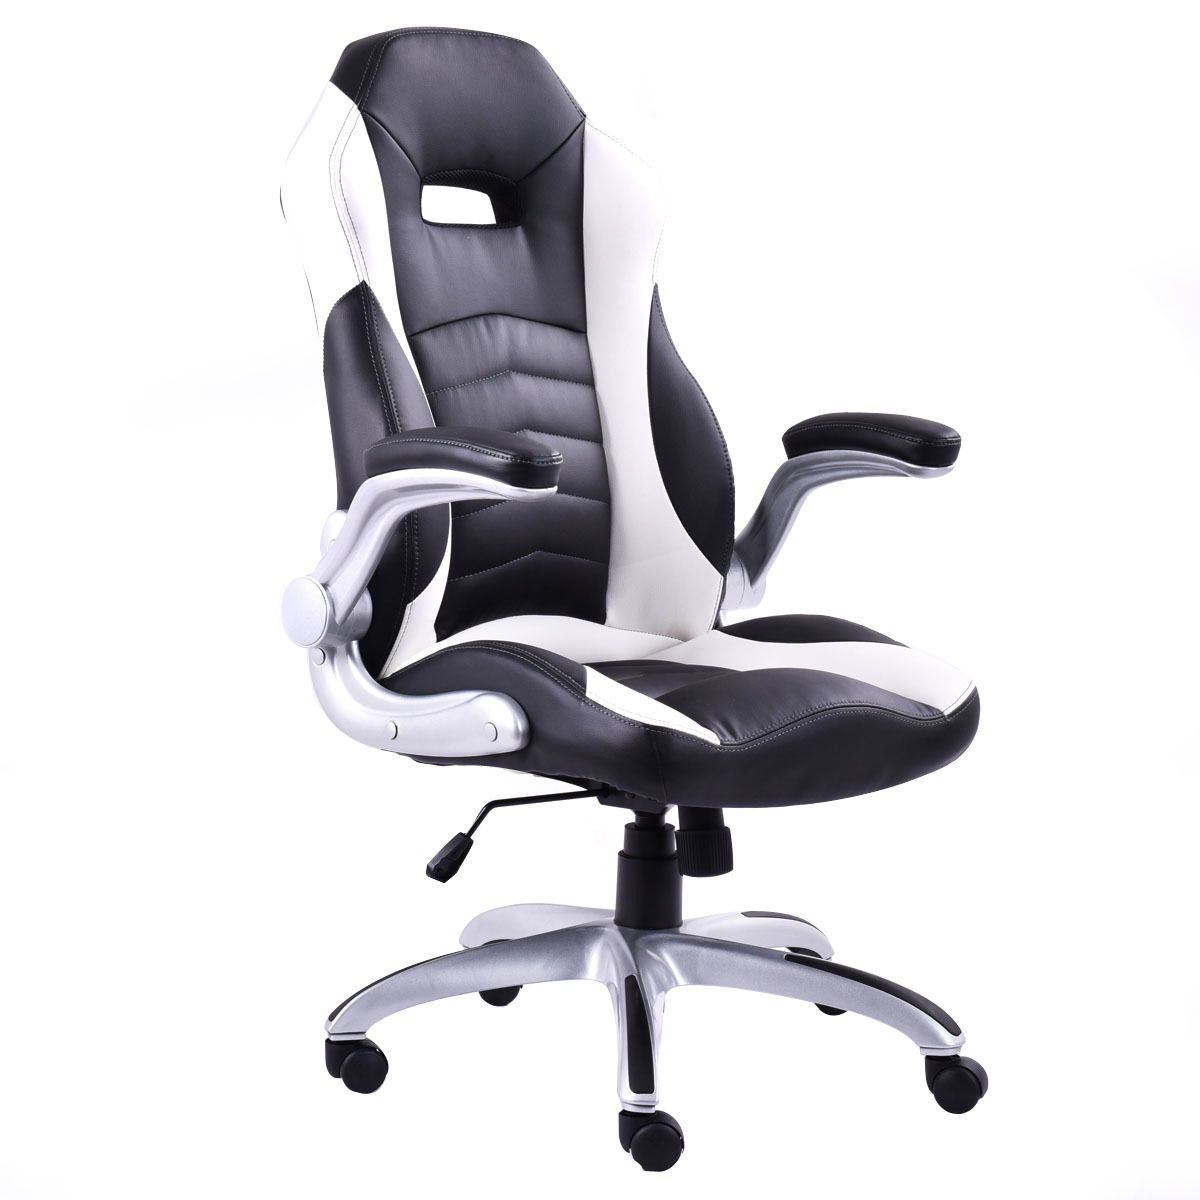 Black & White PU Leather Executive Racing Style Bucket Seat Chair